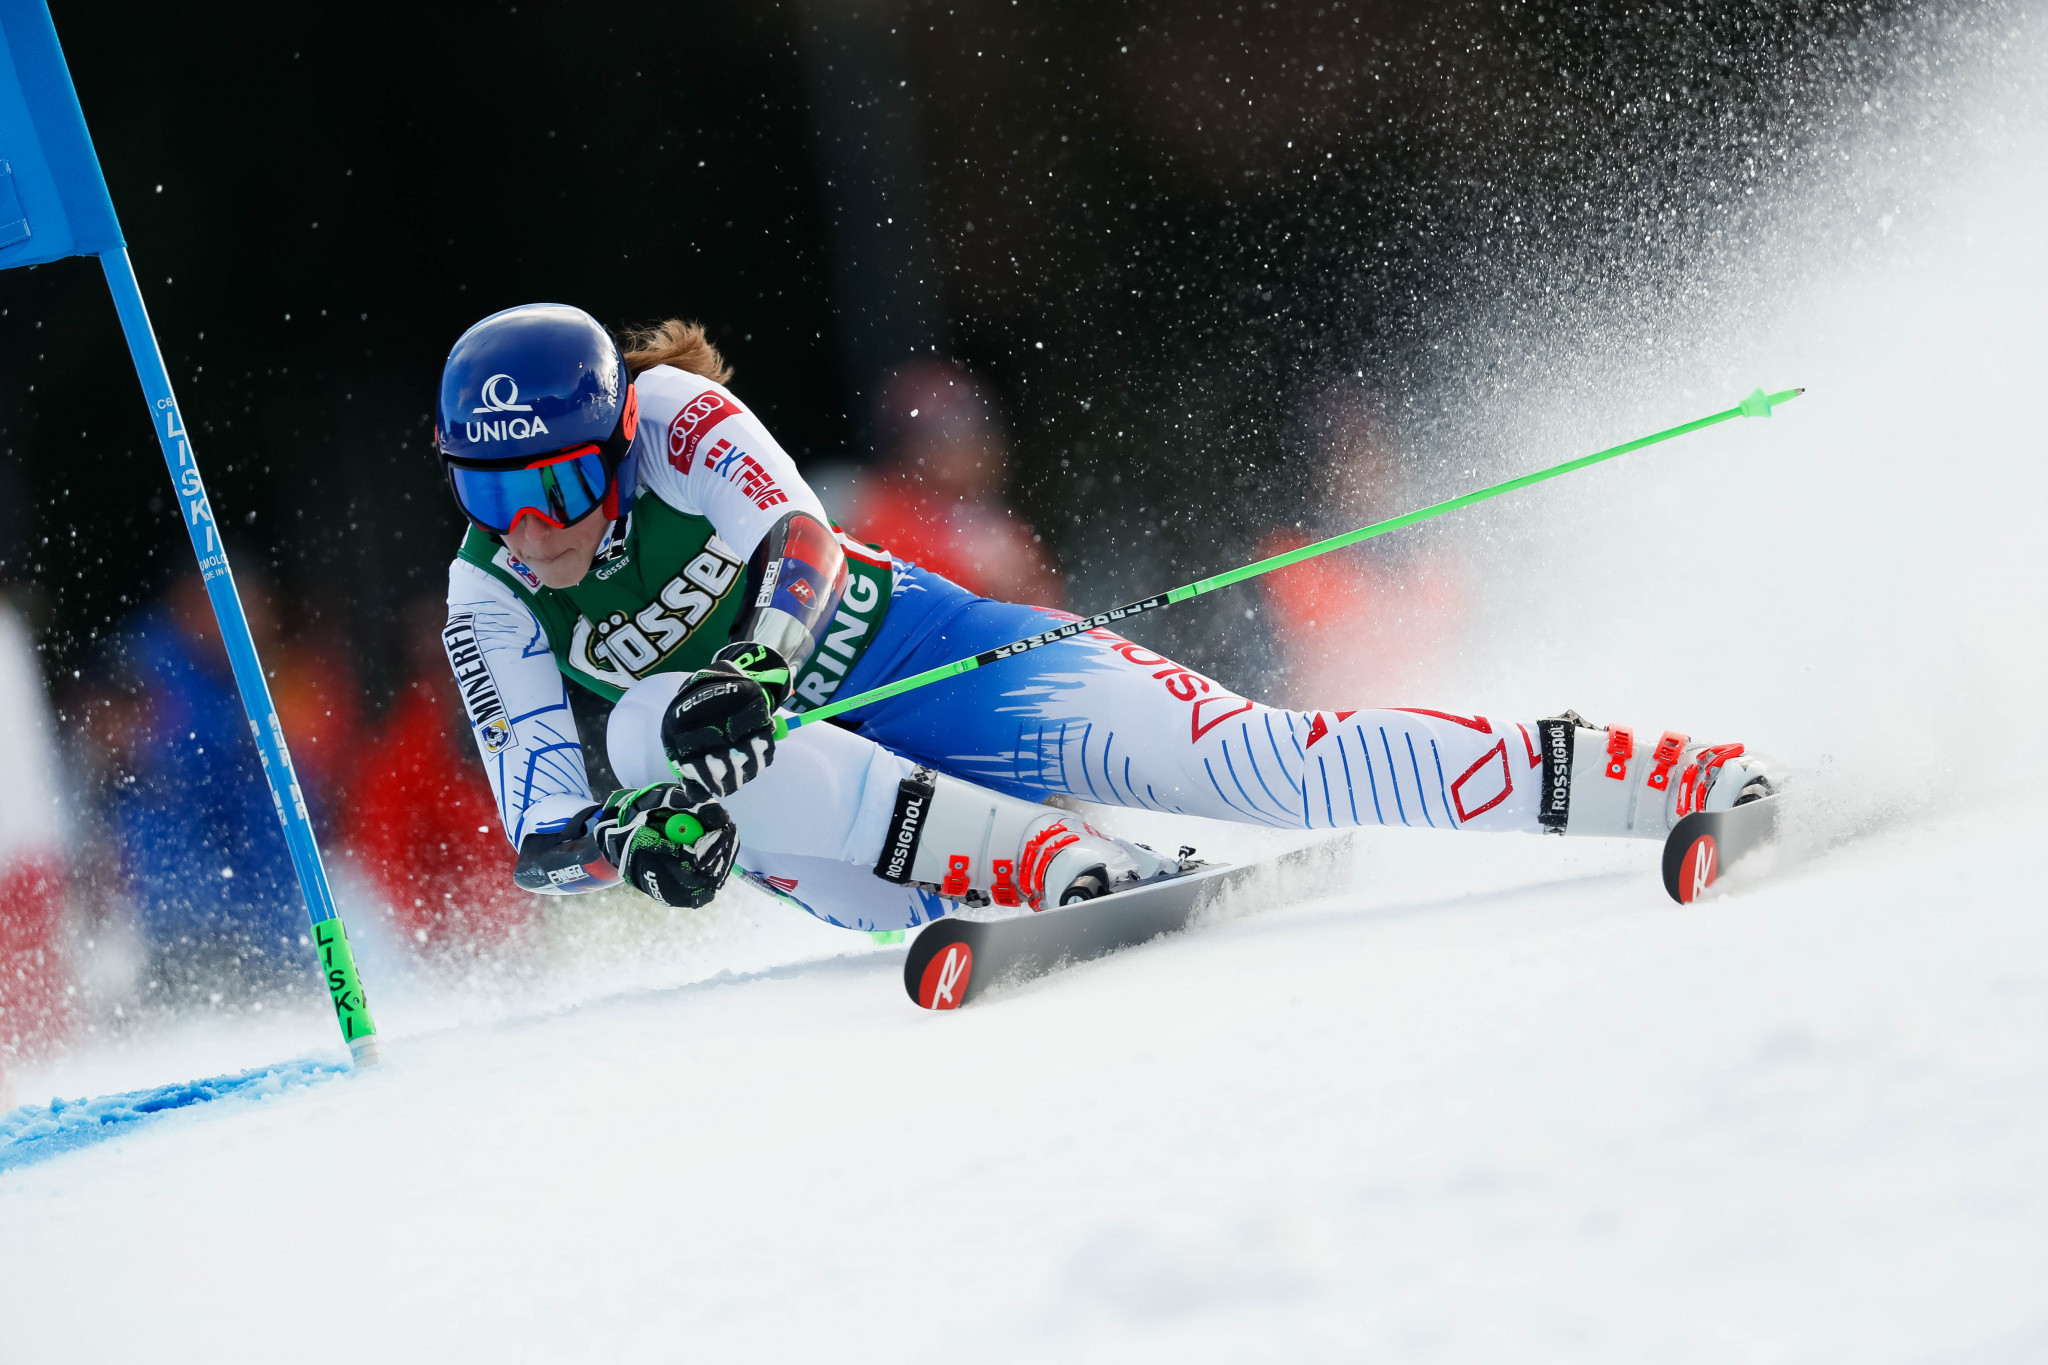 Petra Vlhová was victorious in the last giant slalom race held in Semmering ©Getty Images